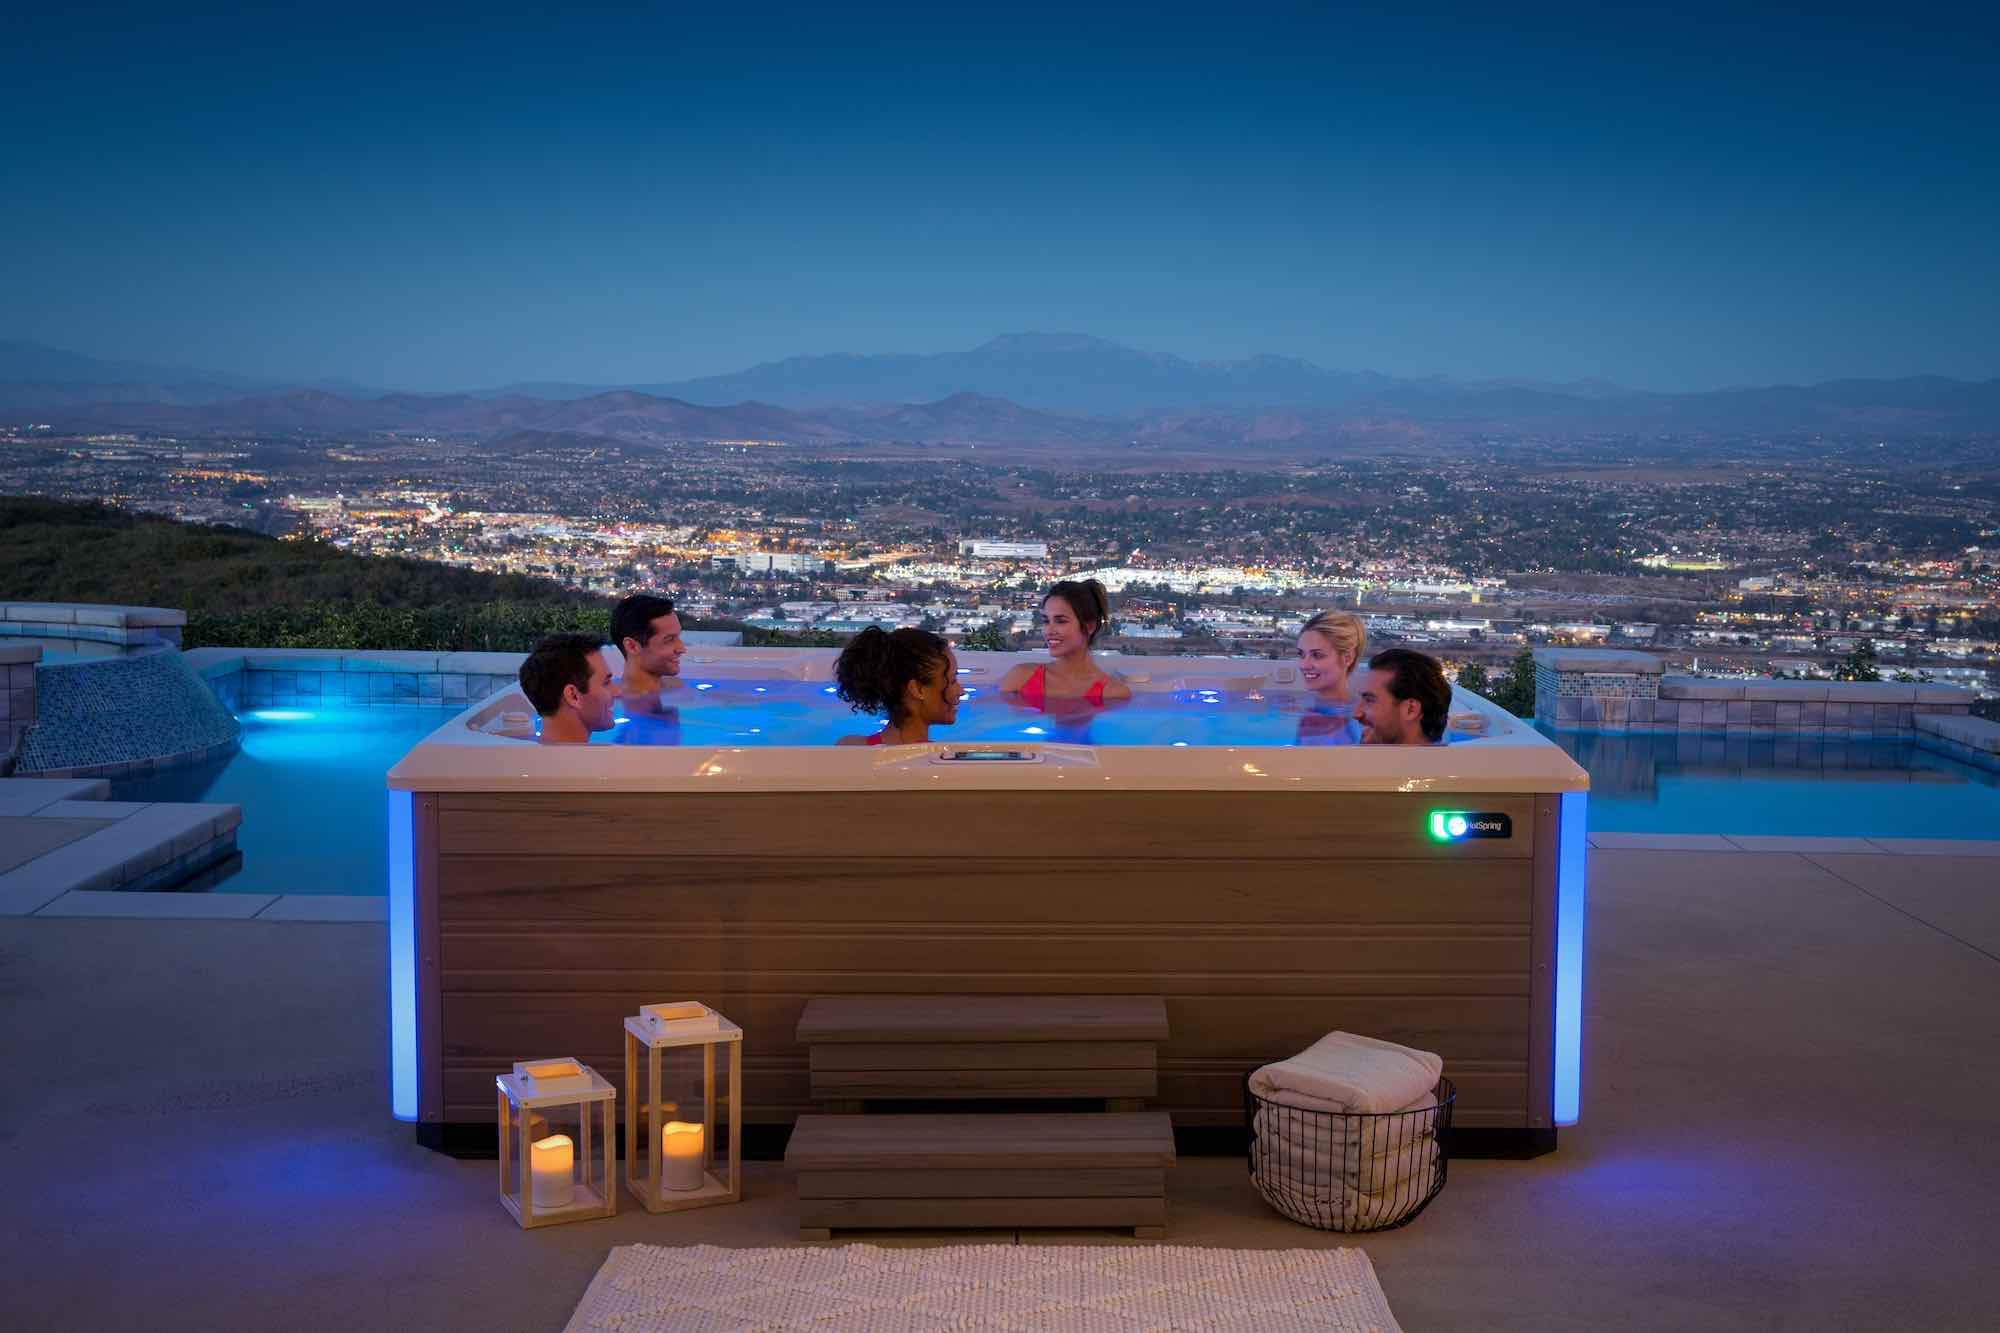 Hot Spring Spas Prism Hot Tub at Lifestyle Outdoor in Los Angeles, California